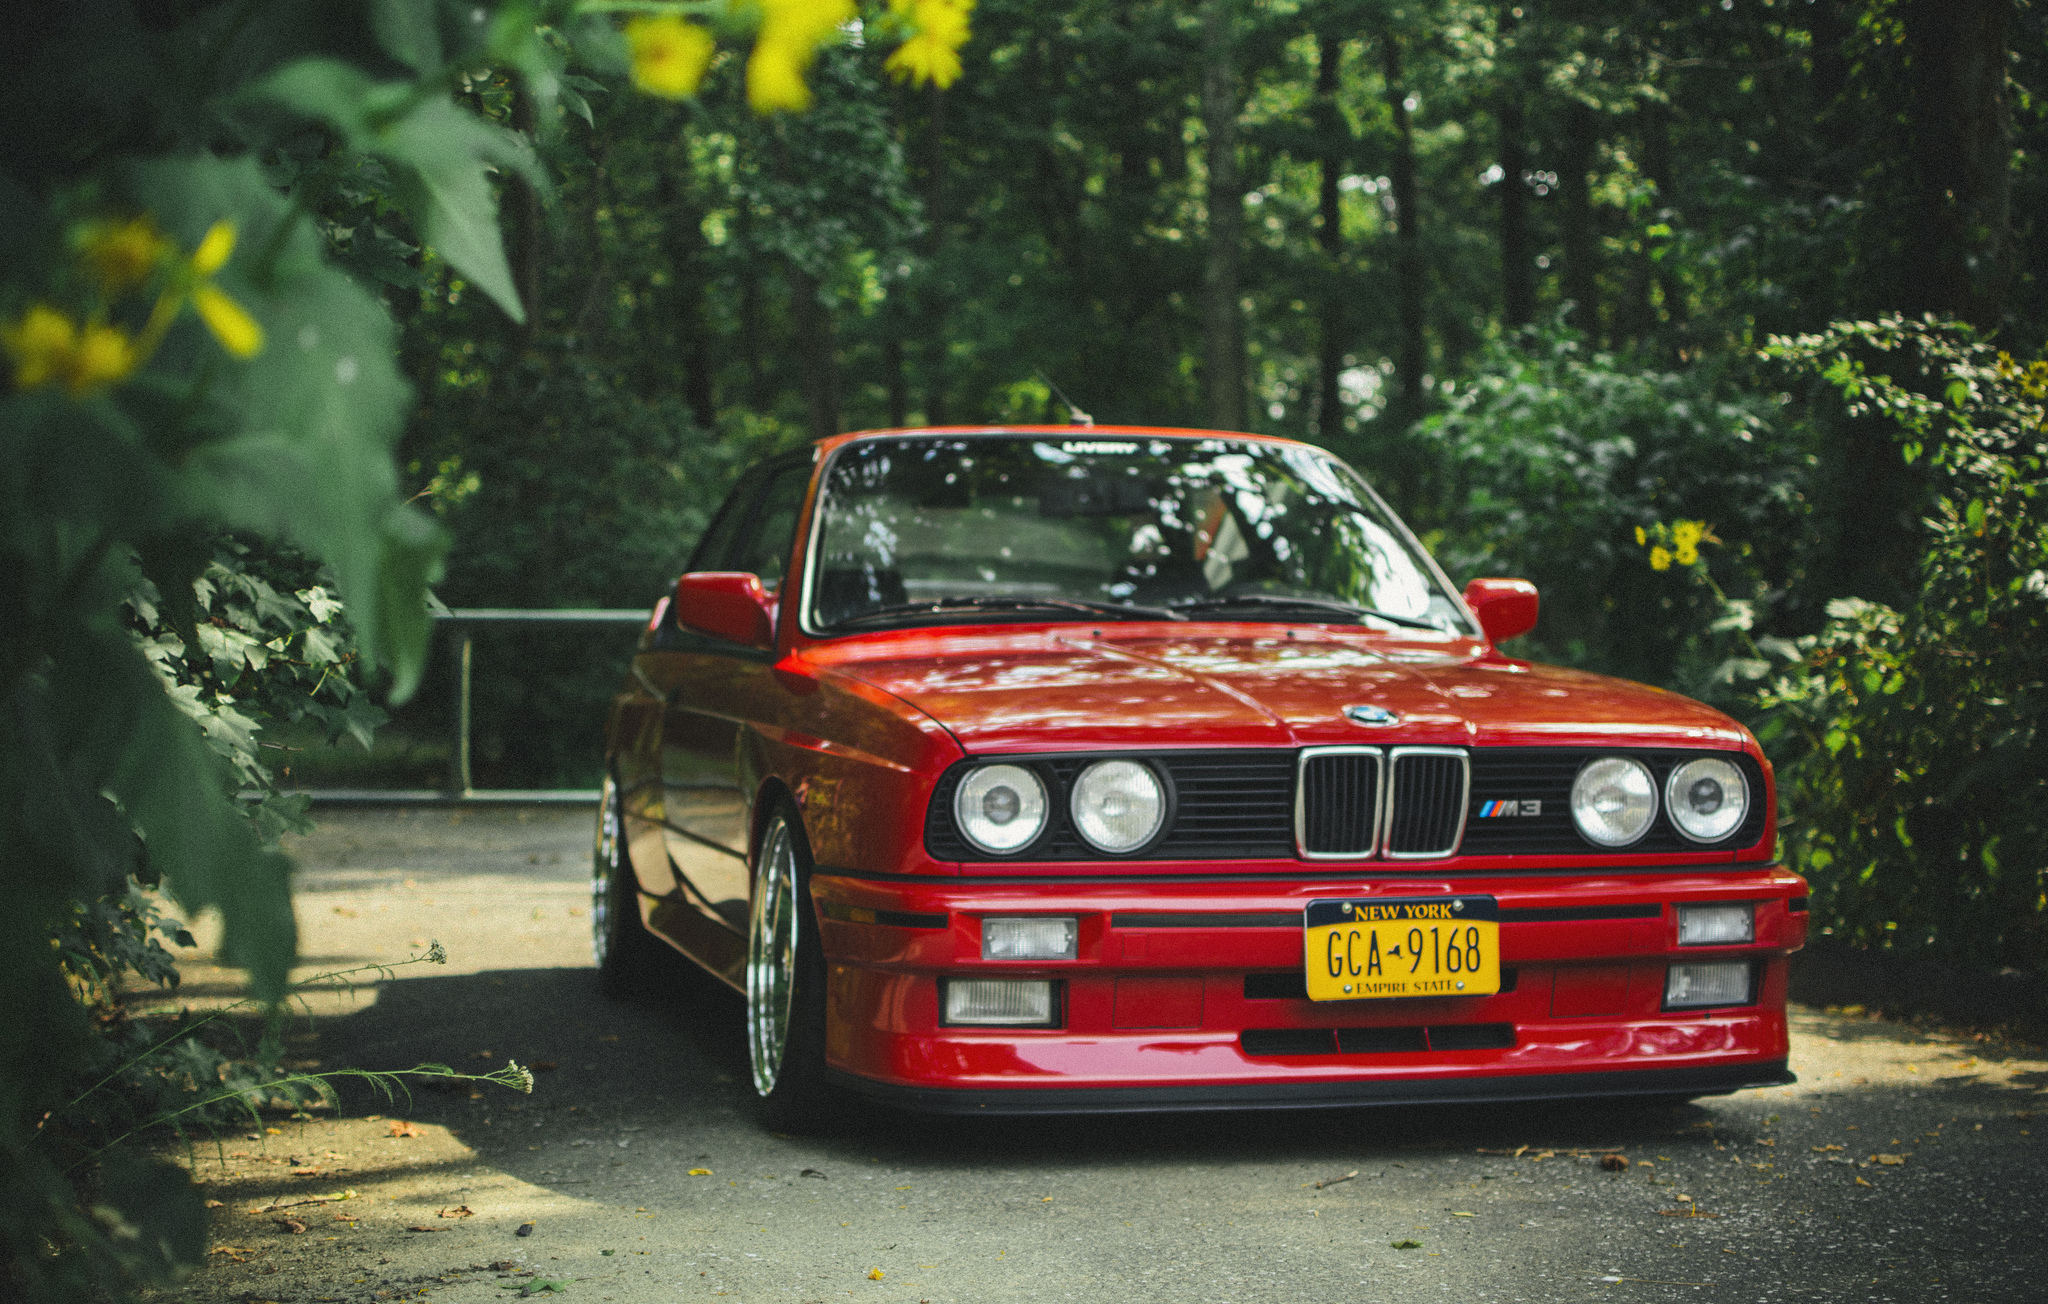 Bmw e30 m3 red tuning bmw m3 red before wallpaper photos 2048x1304